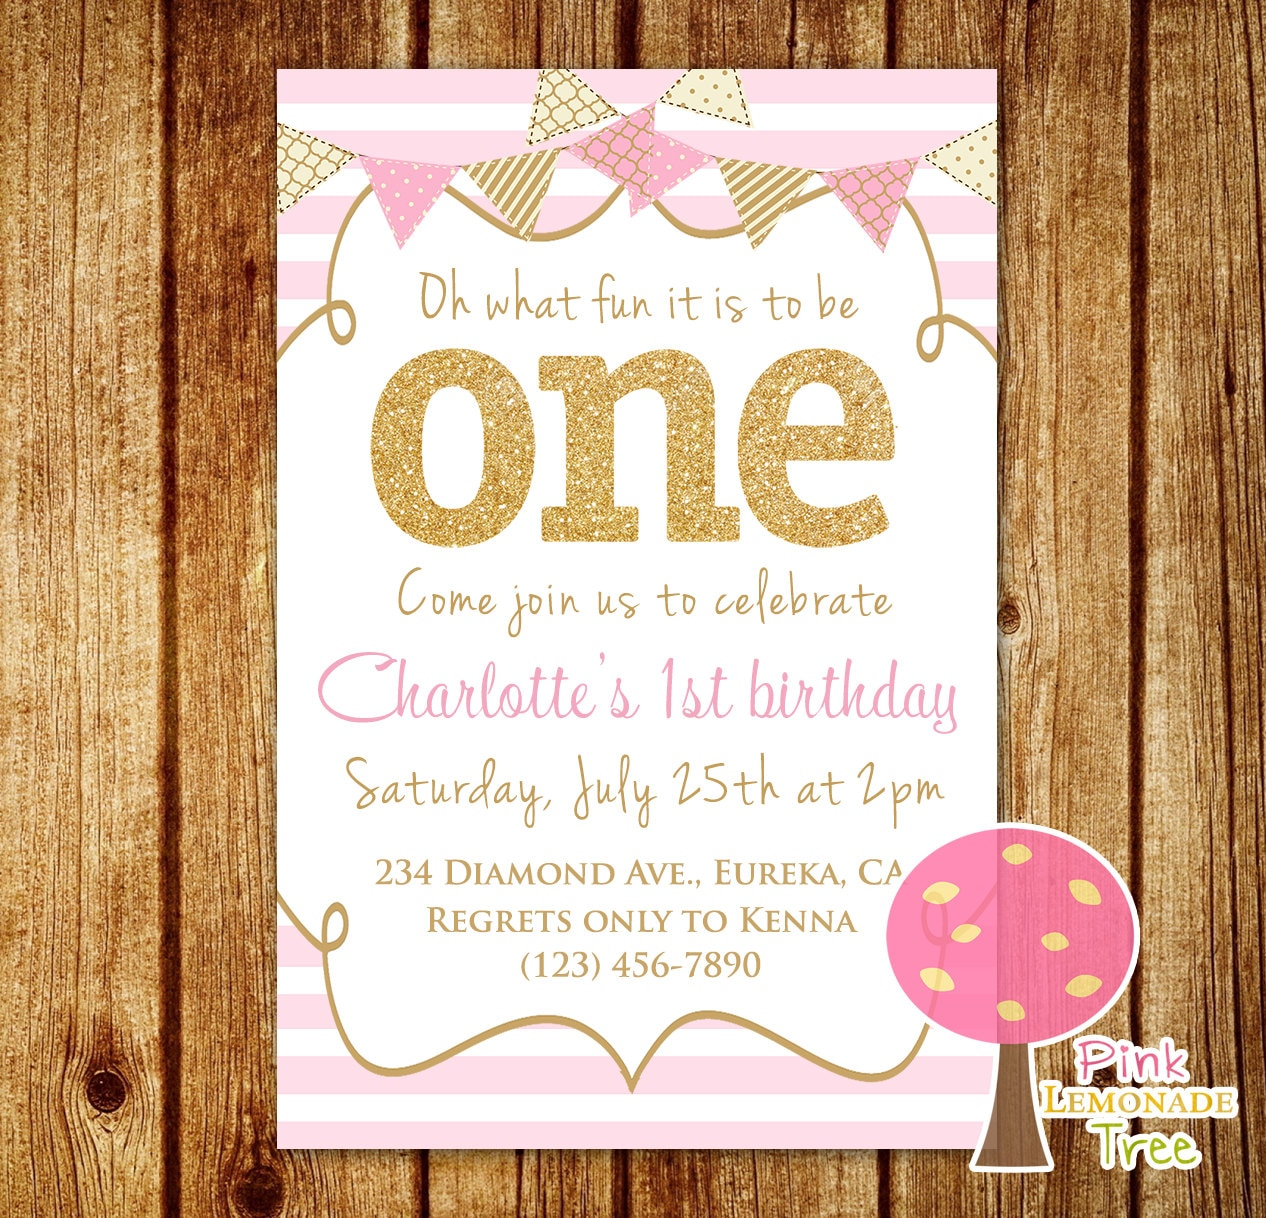 Walgreen Invitations with nice invitations sample